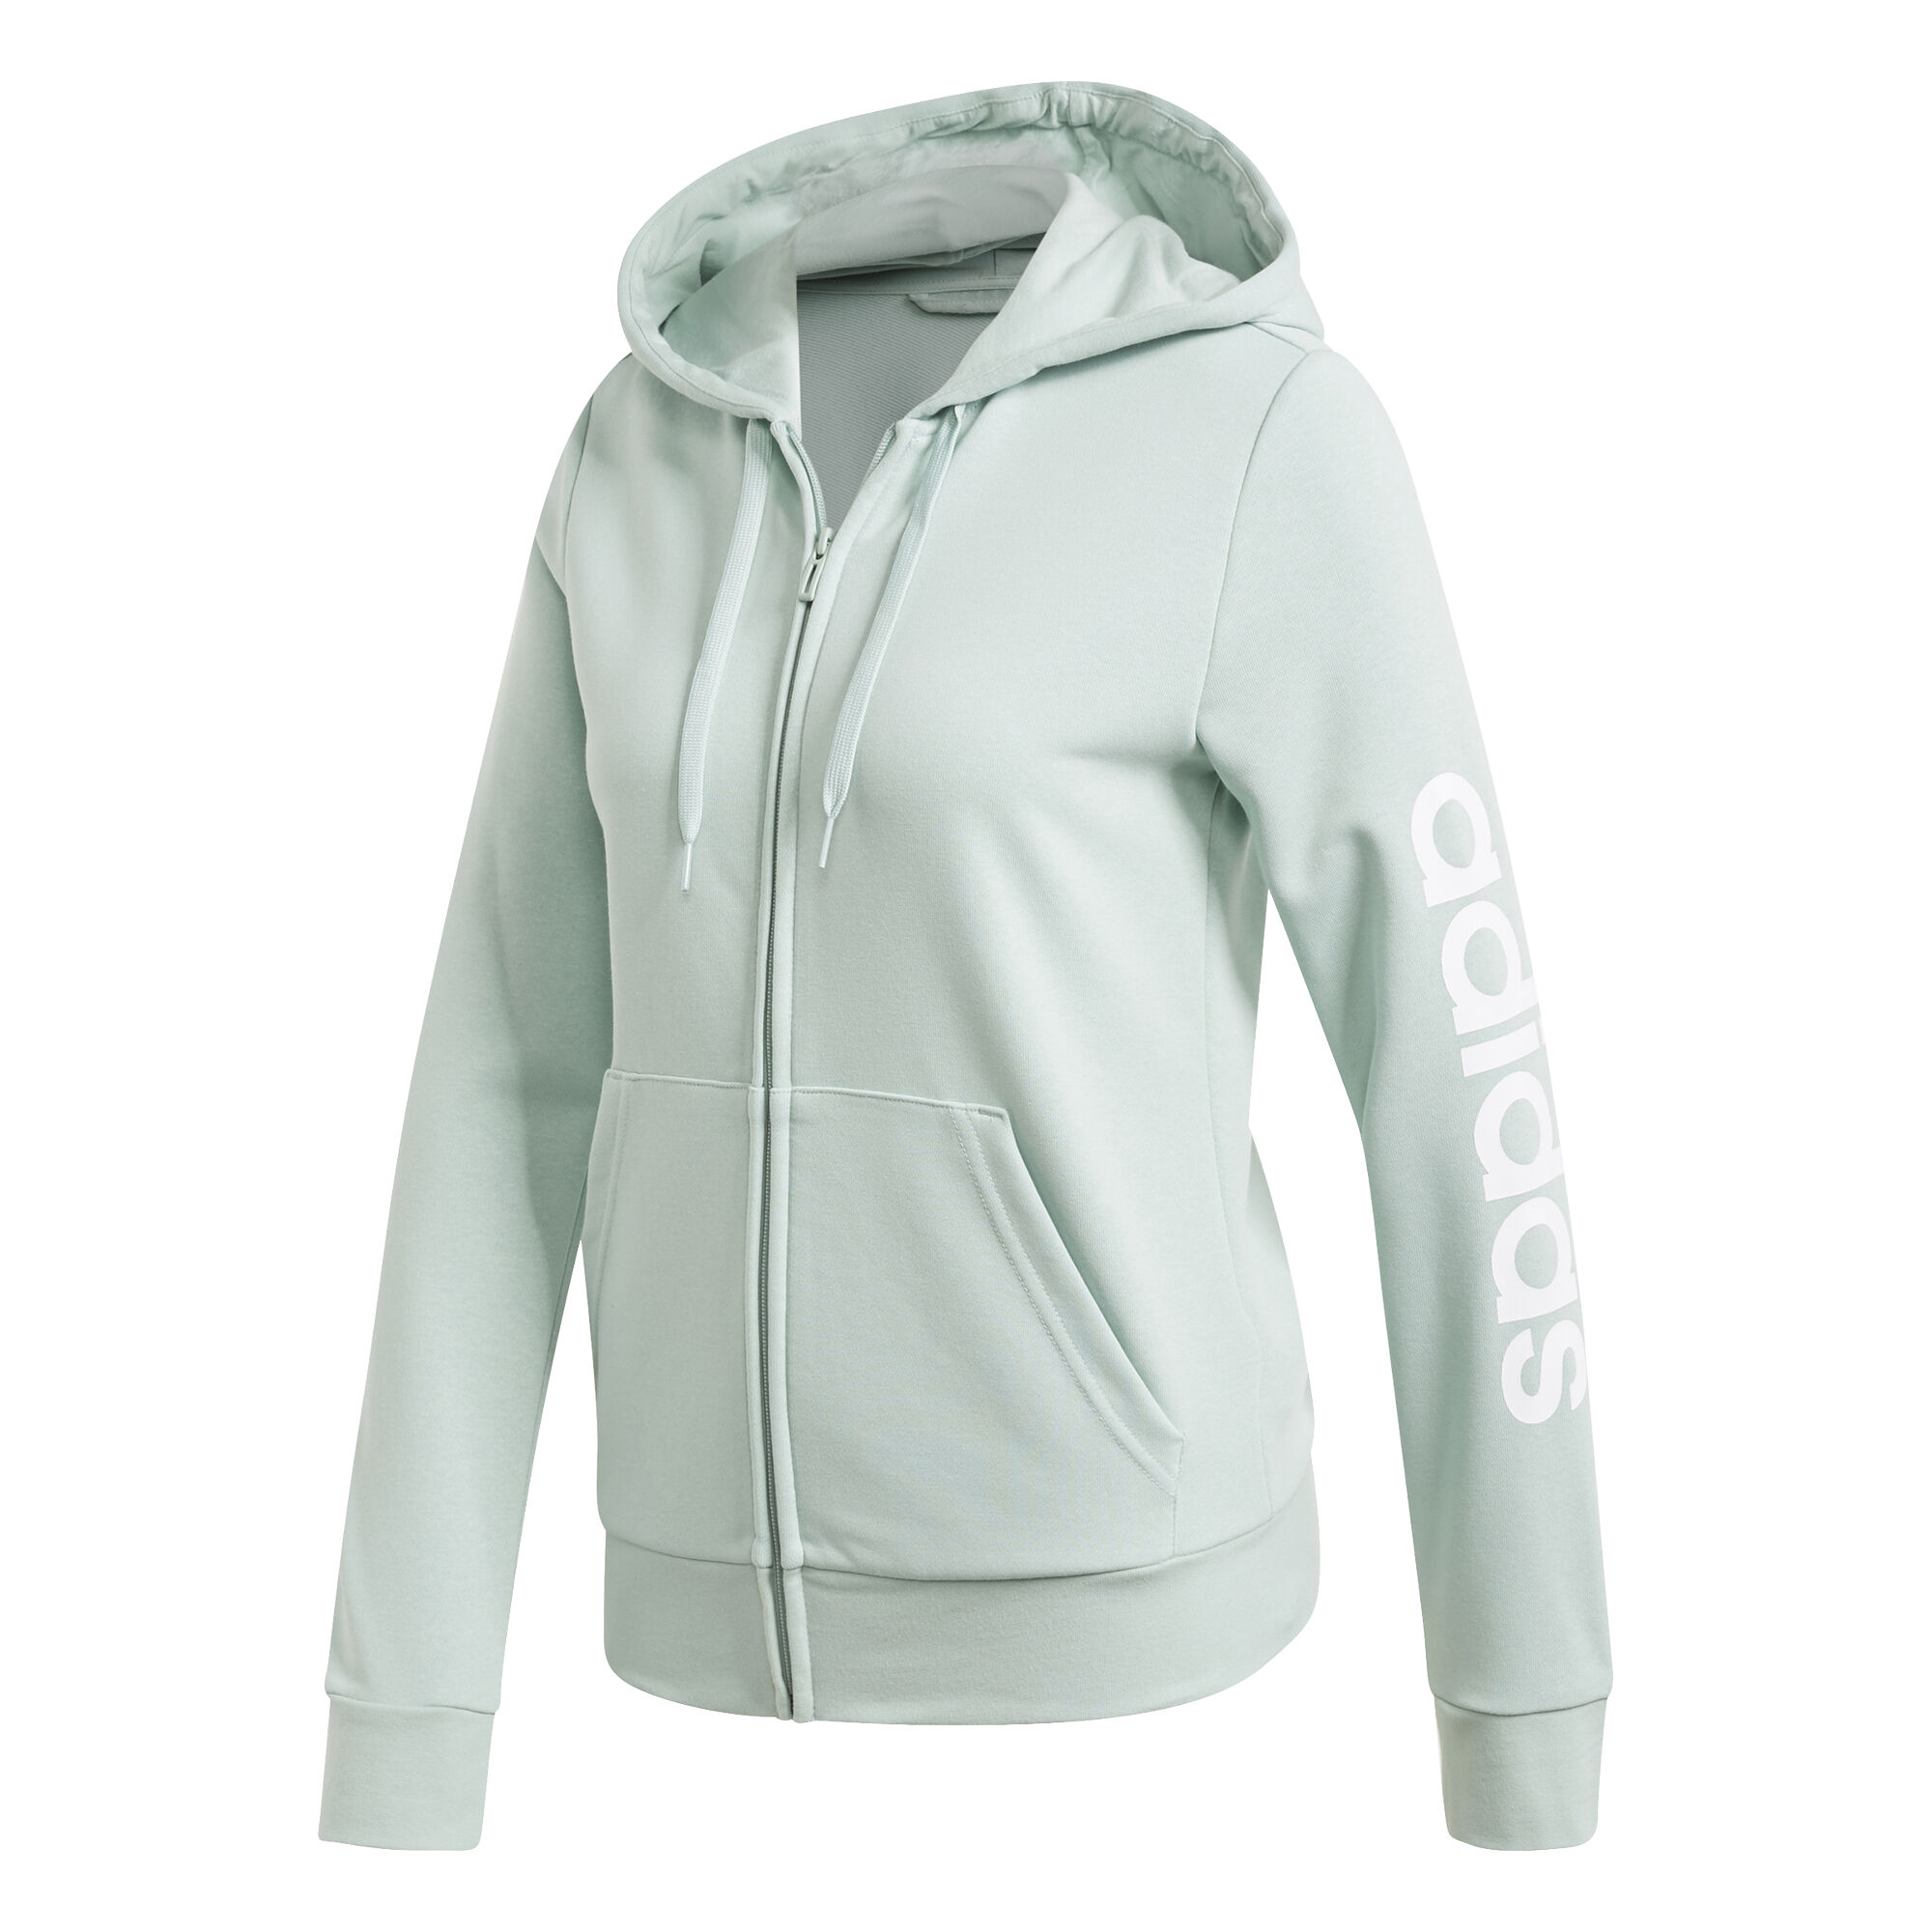 adidas Essentials Sweatjacke Damen Mint, Weiß online